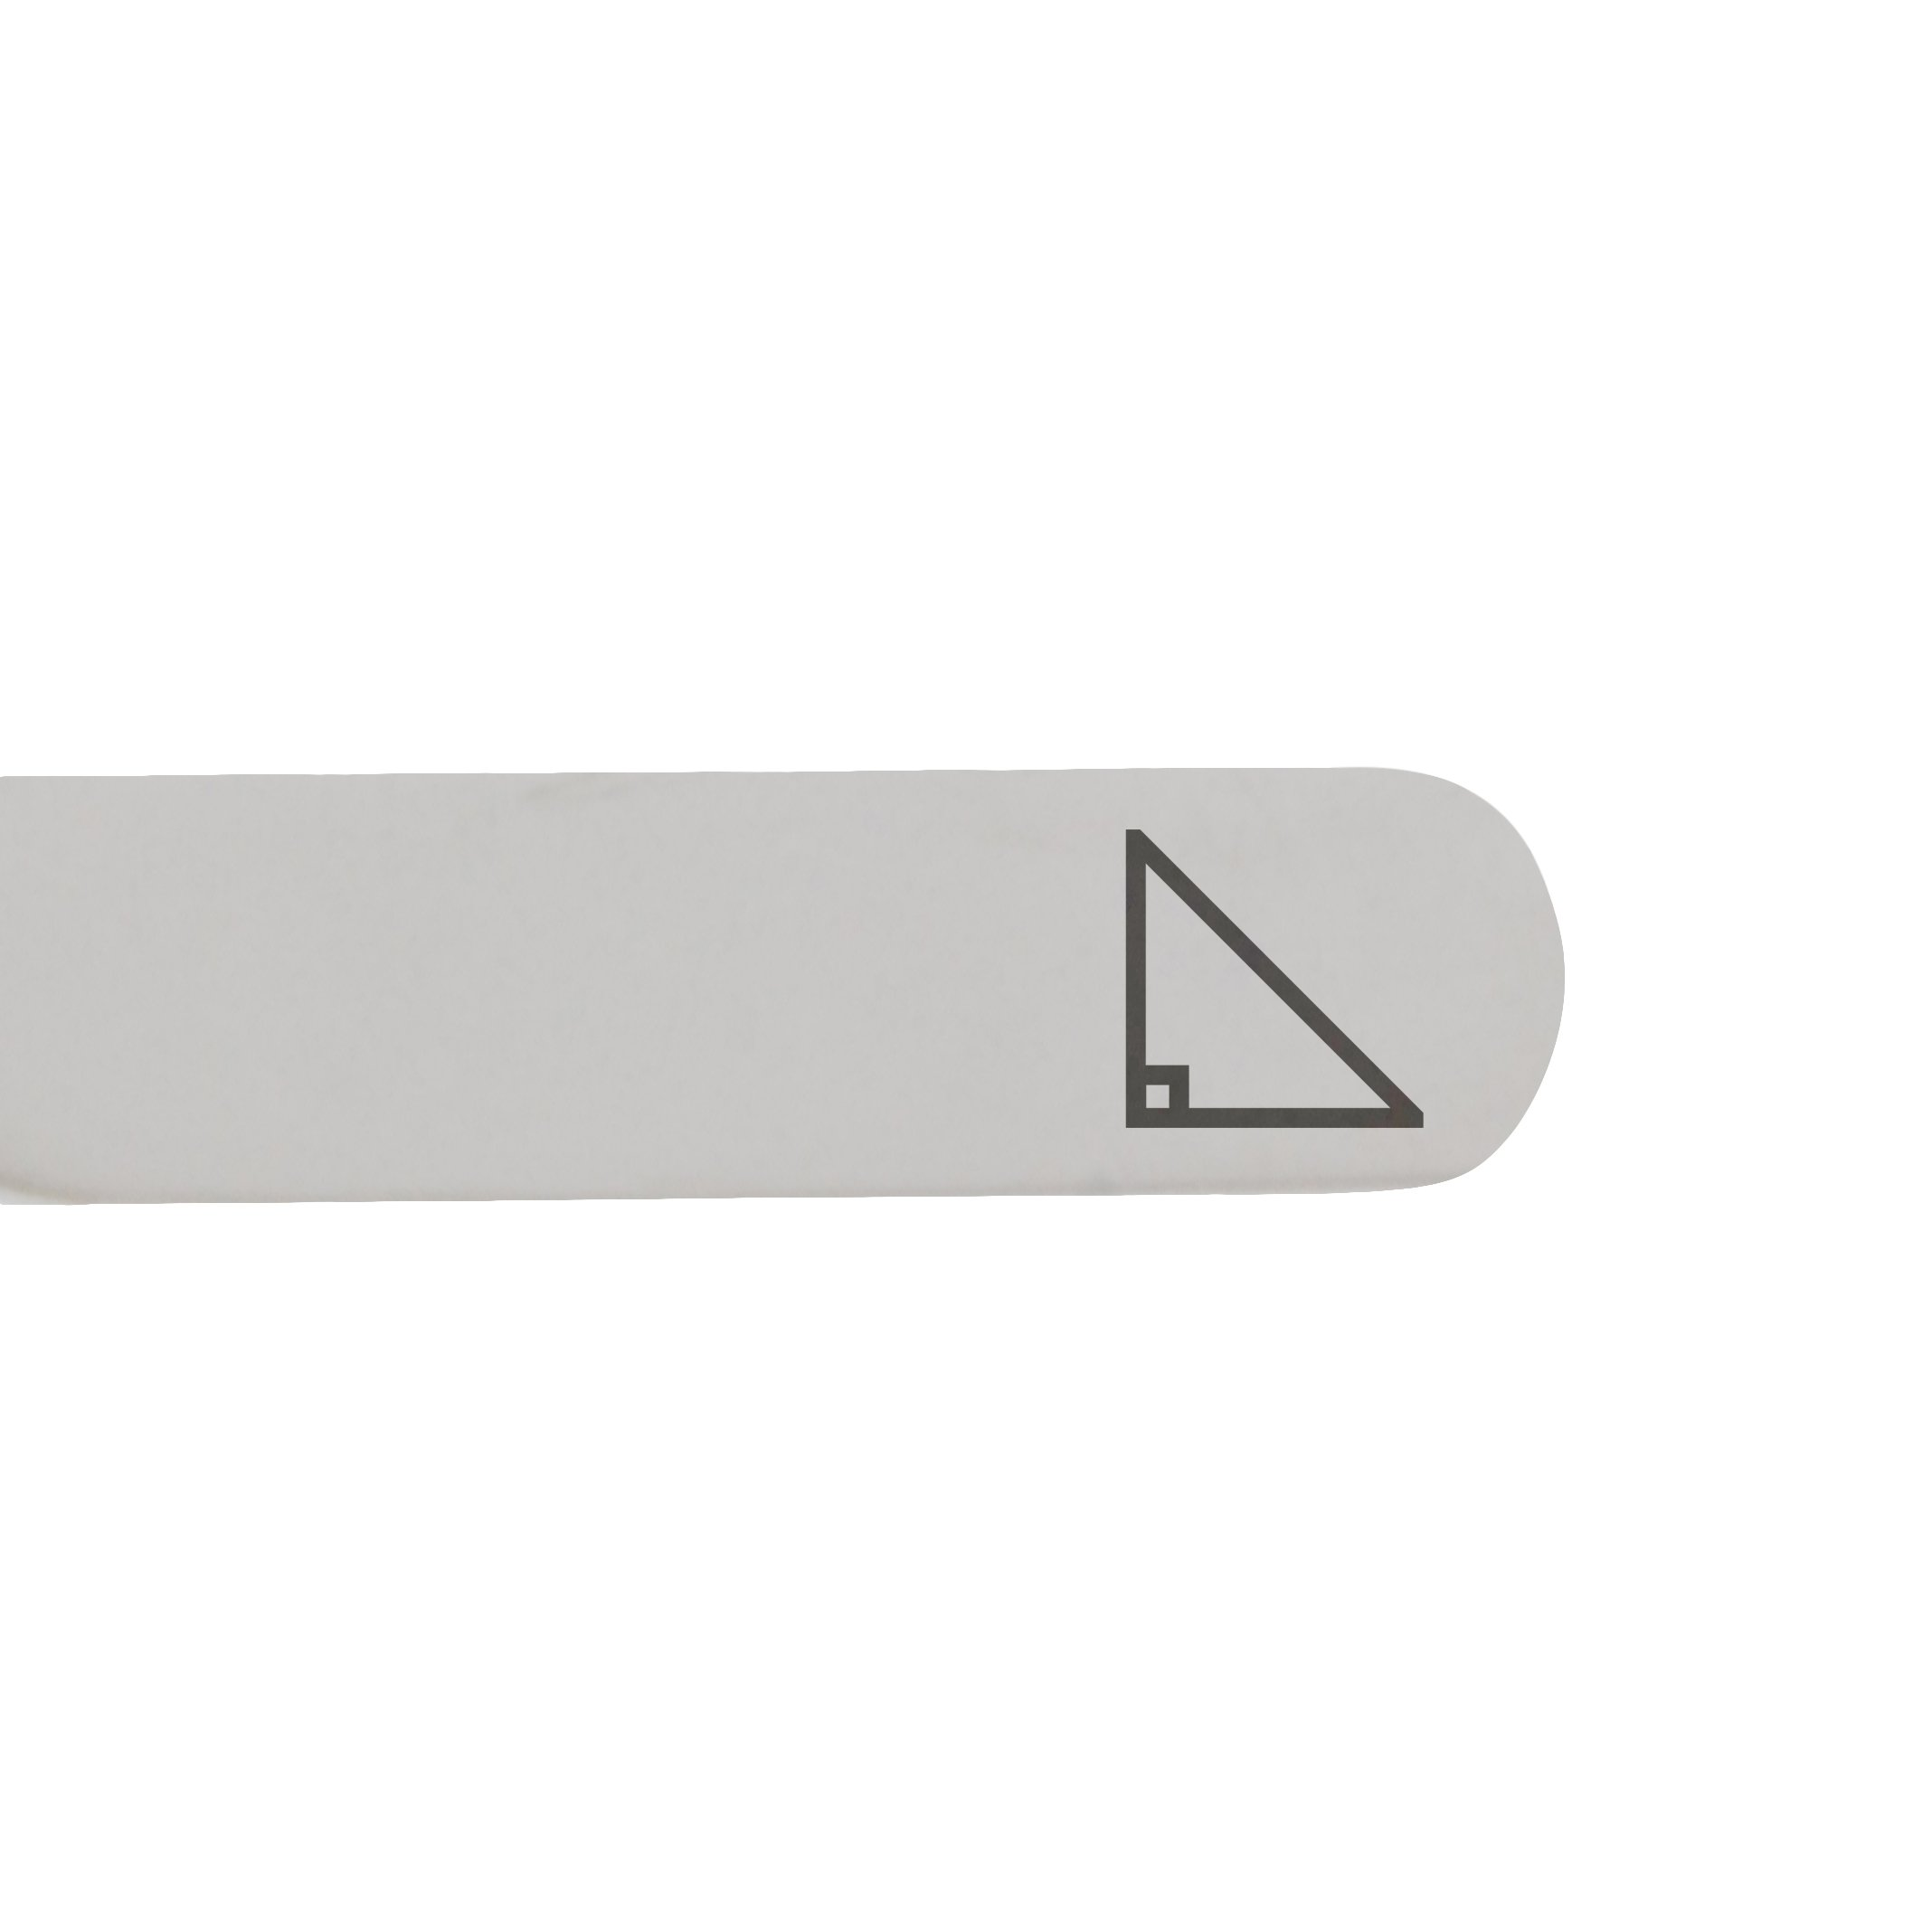 MODERN GOODS SHOP Stainless Steel Collar Stays With Laser Engraved Right Triangle Design - 2.5 Inch Metal Collar Stiffeners - Made In USA by Modern Accessories Co (Image #2)